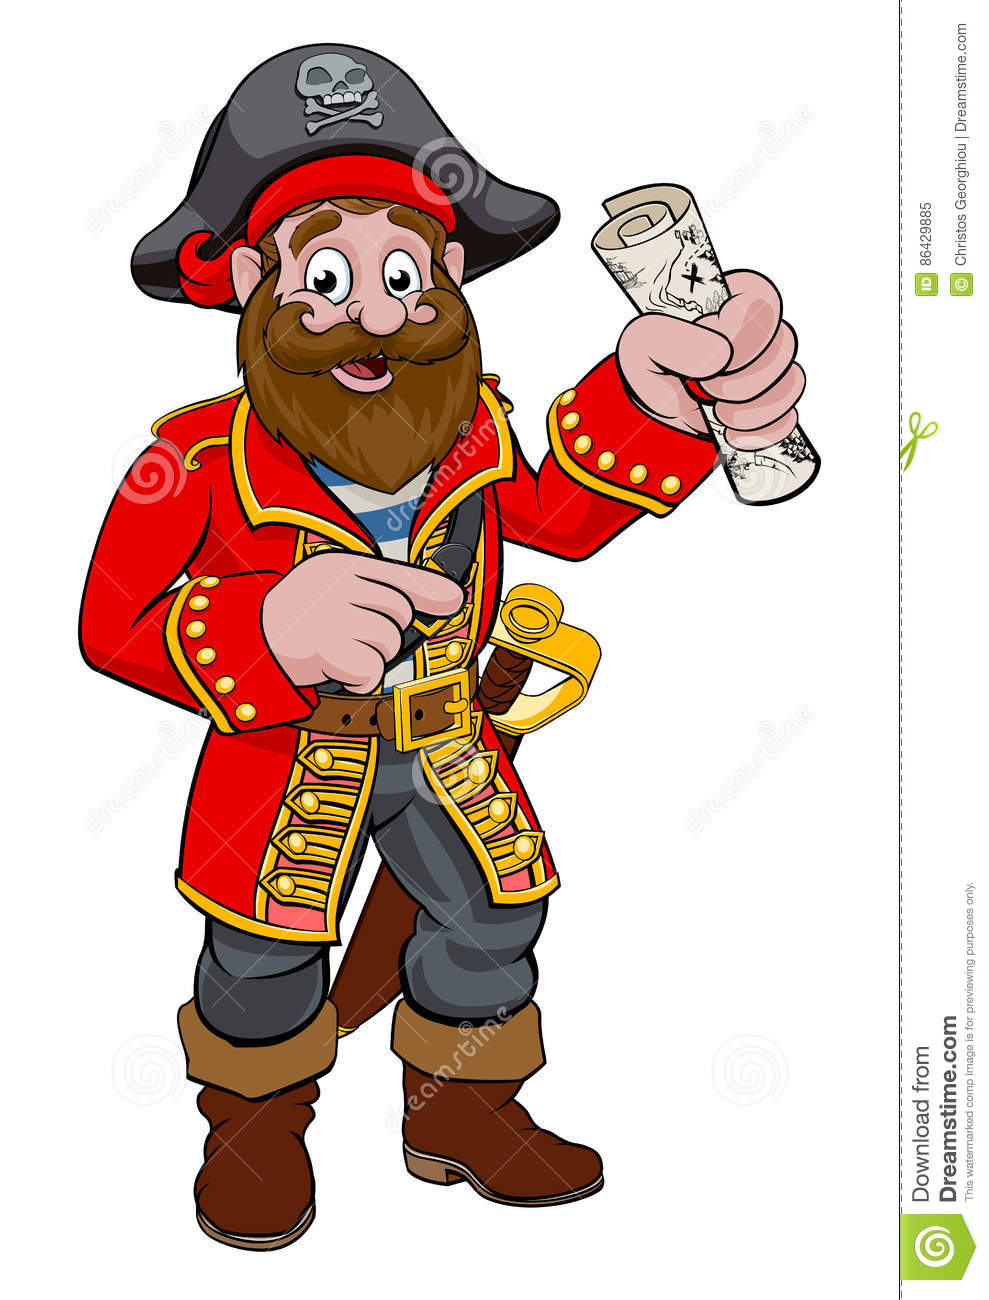 Cartoon Pirate stock vector. Illustration of clipart.